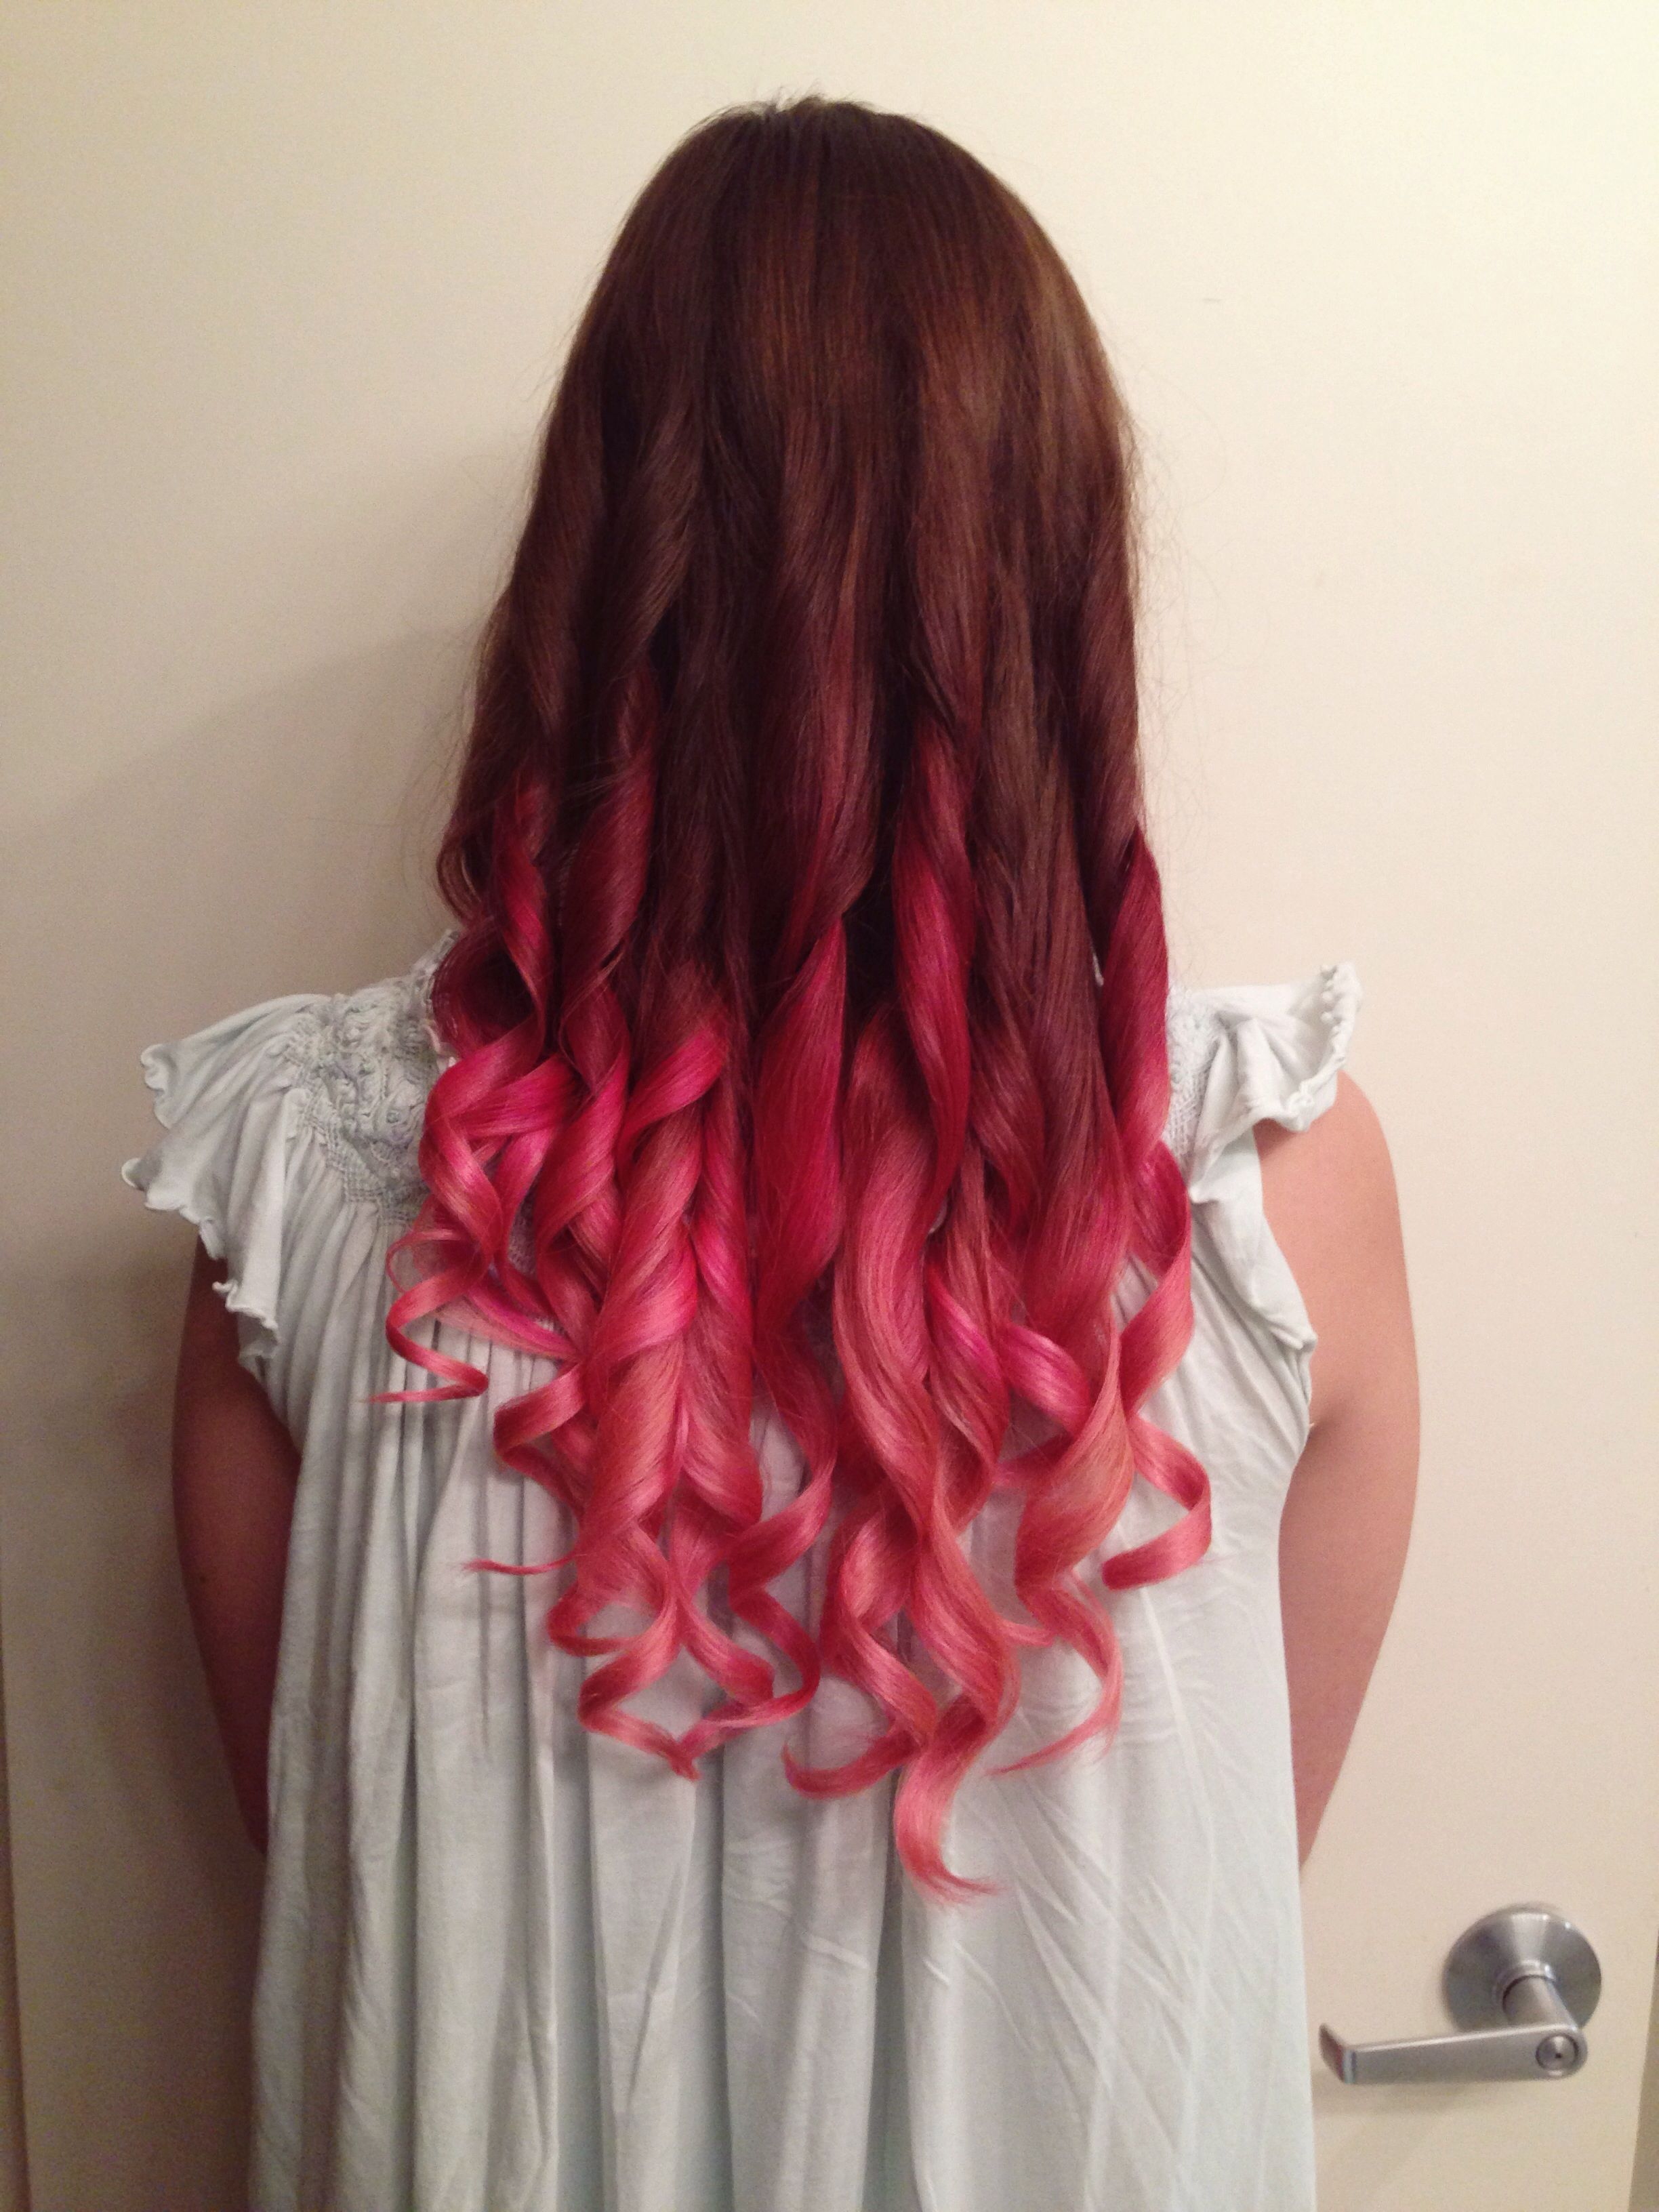 Pin By Radiant Summer Days On Beauty Dyed Hair Ombre Hair With Flair Pink Cotton Candy